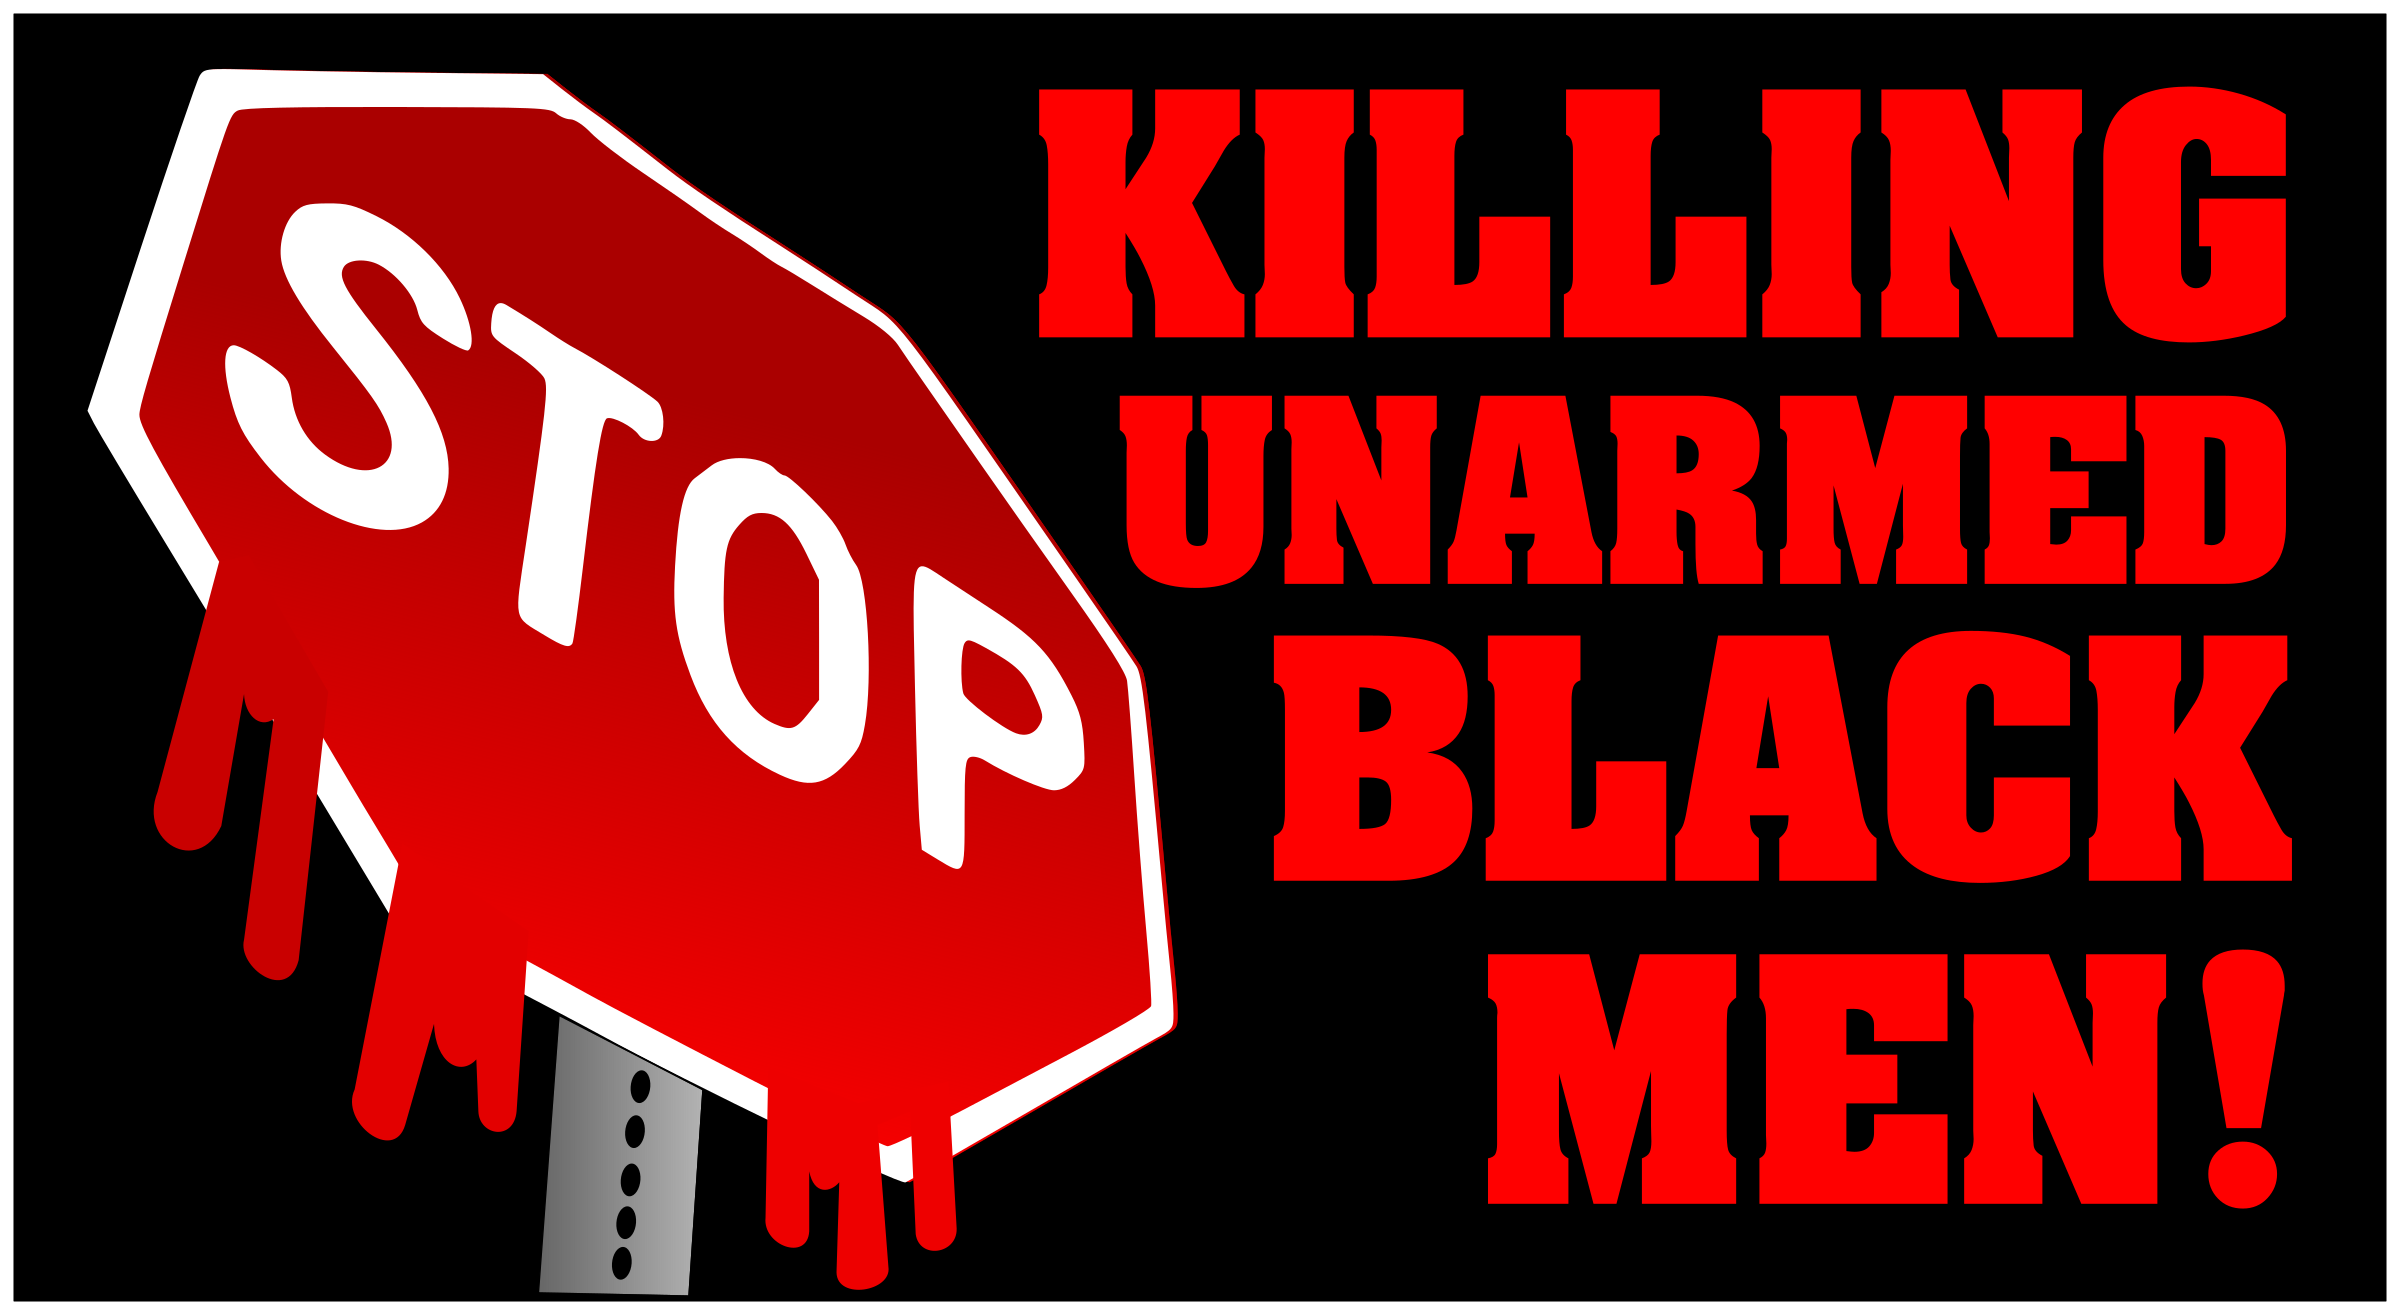 Stop Killing Unarmed Black Men by Raker Tooth